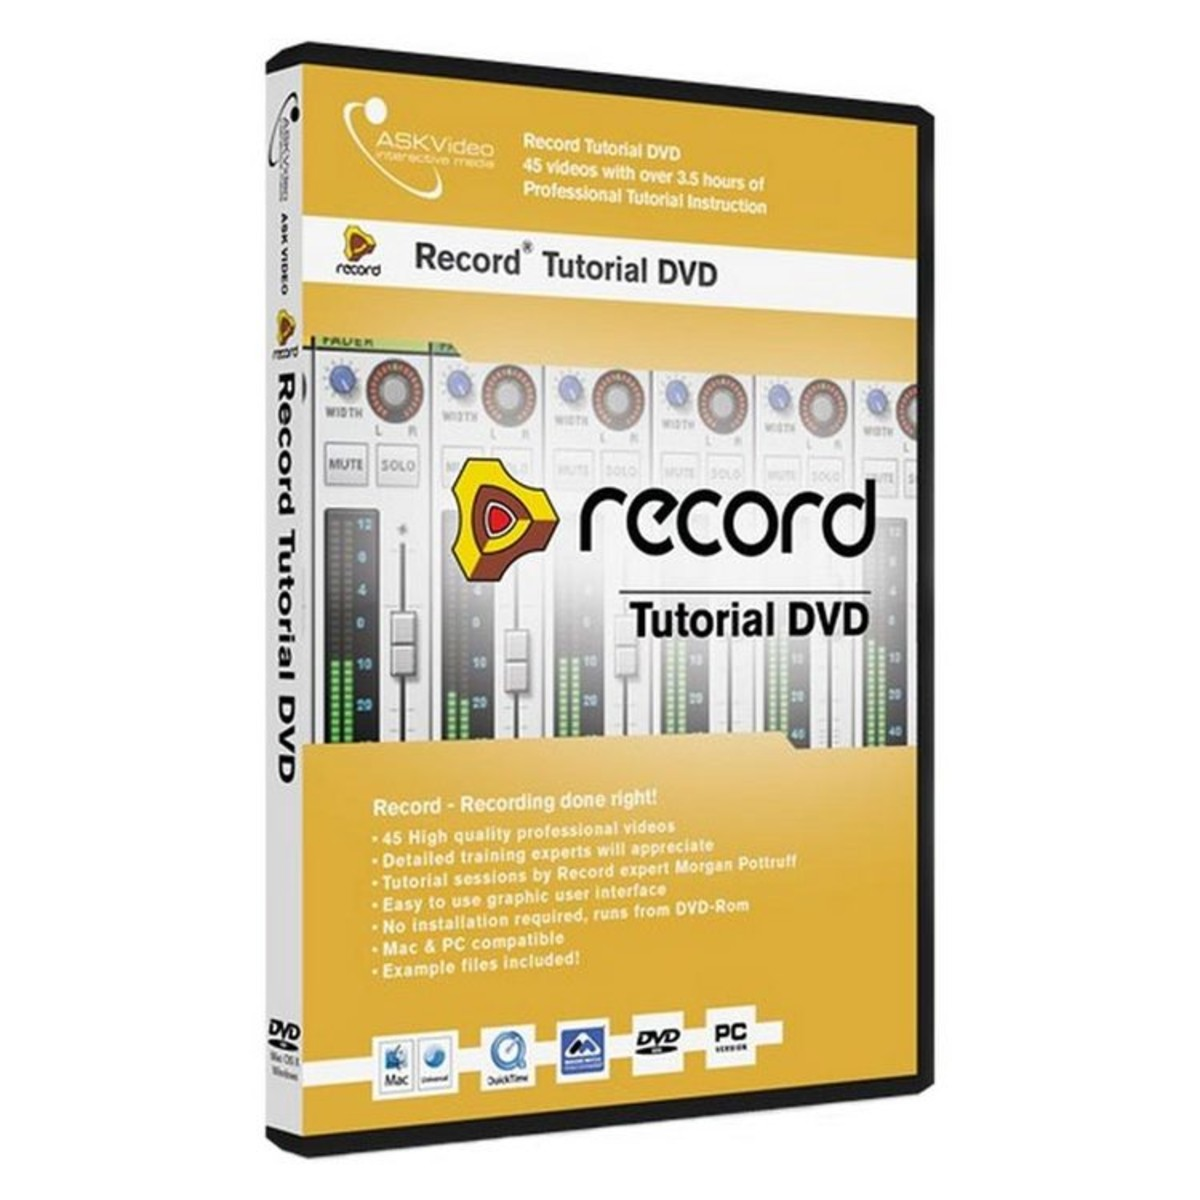 Askvideo Record 15 Tutorial Dvd